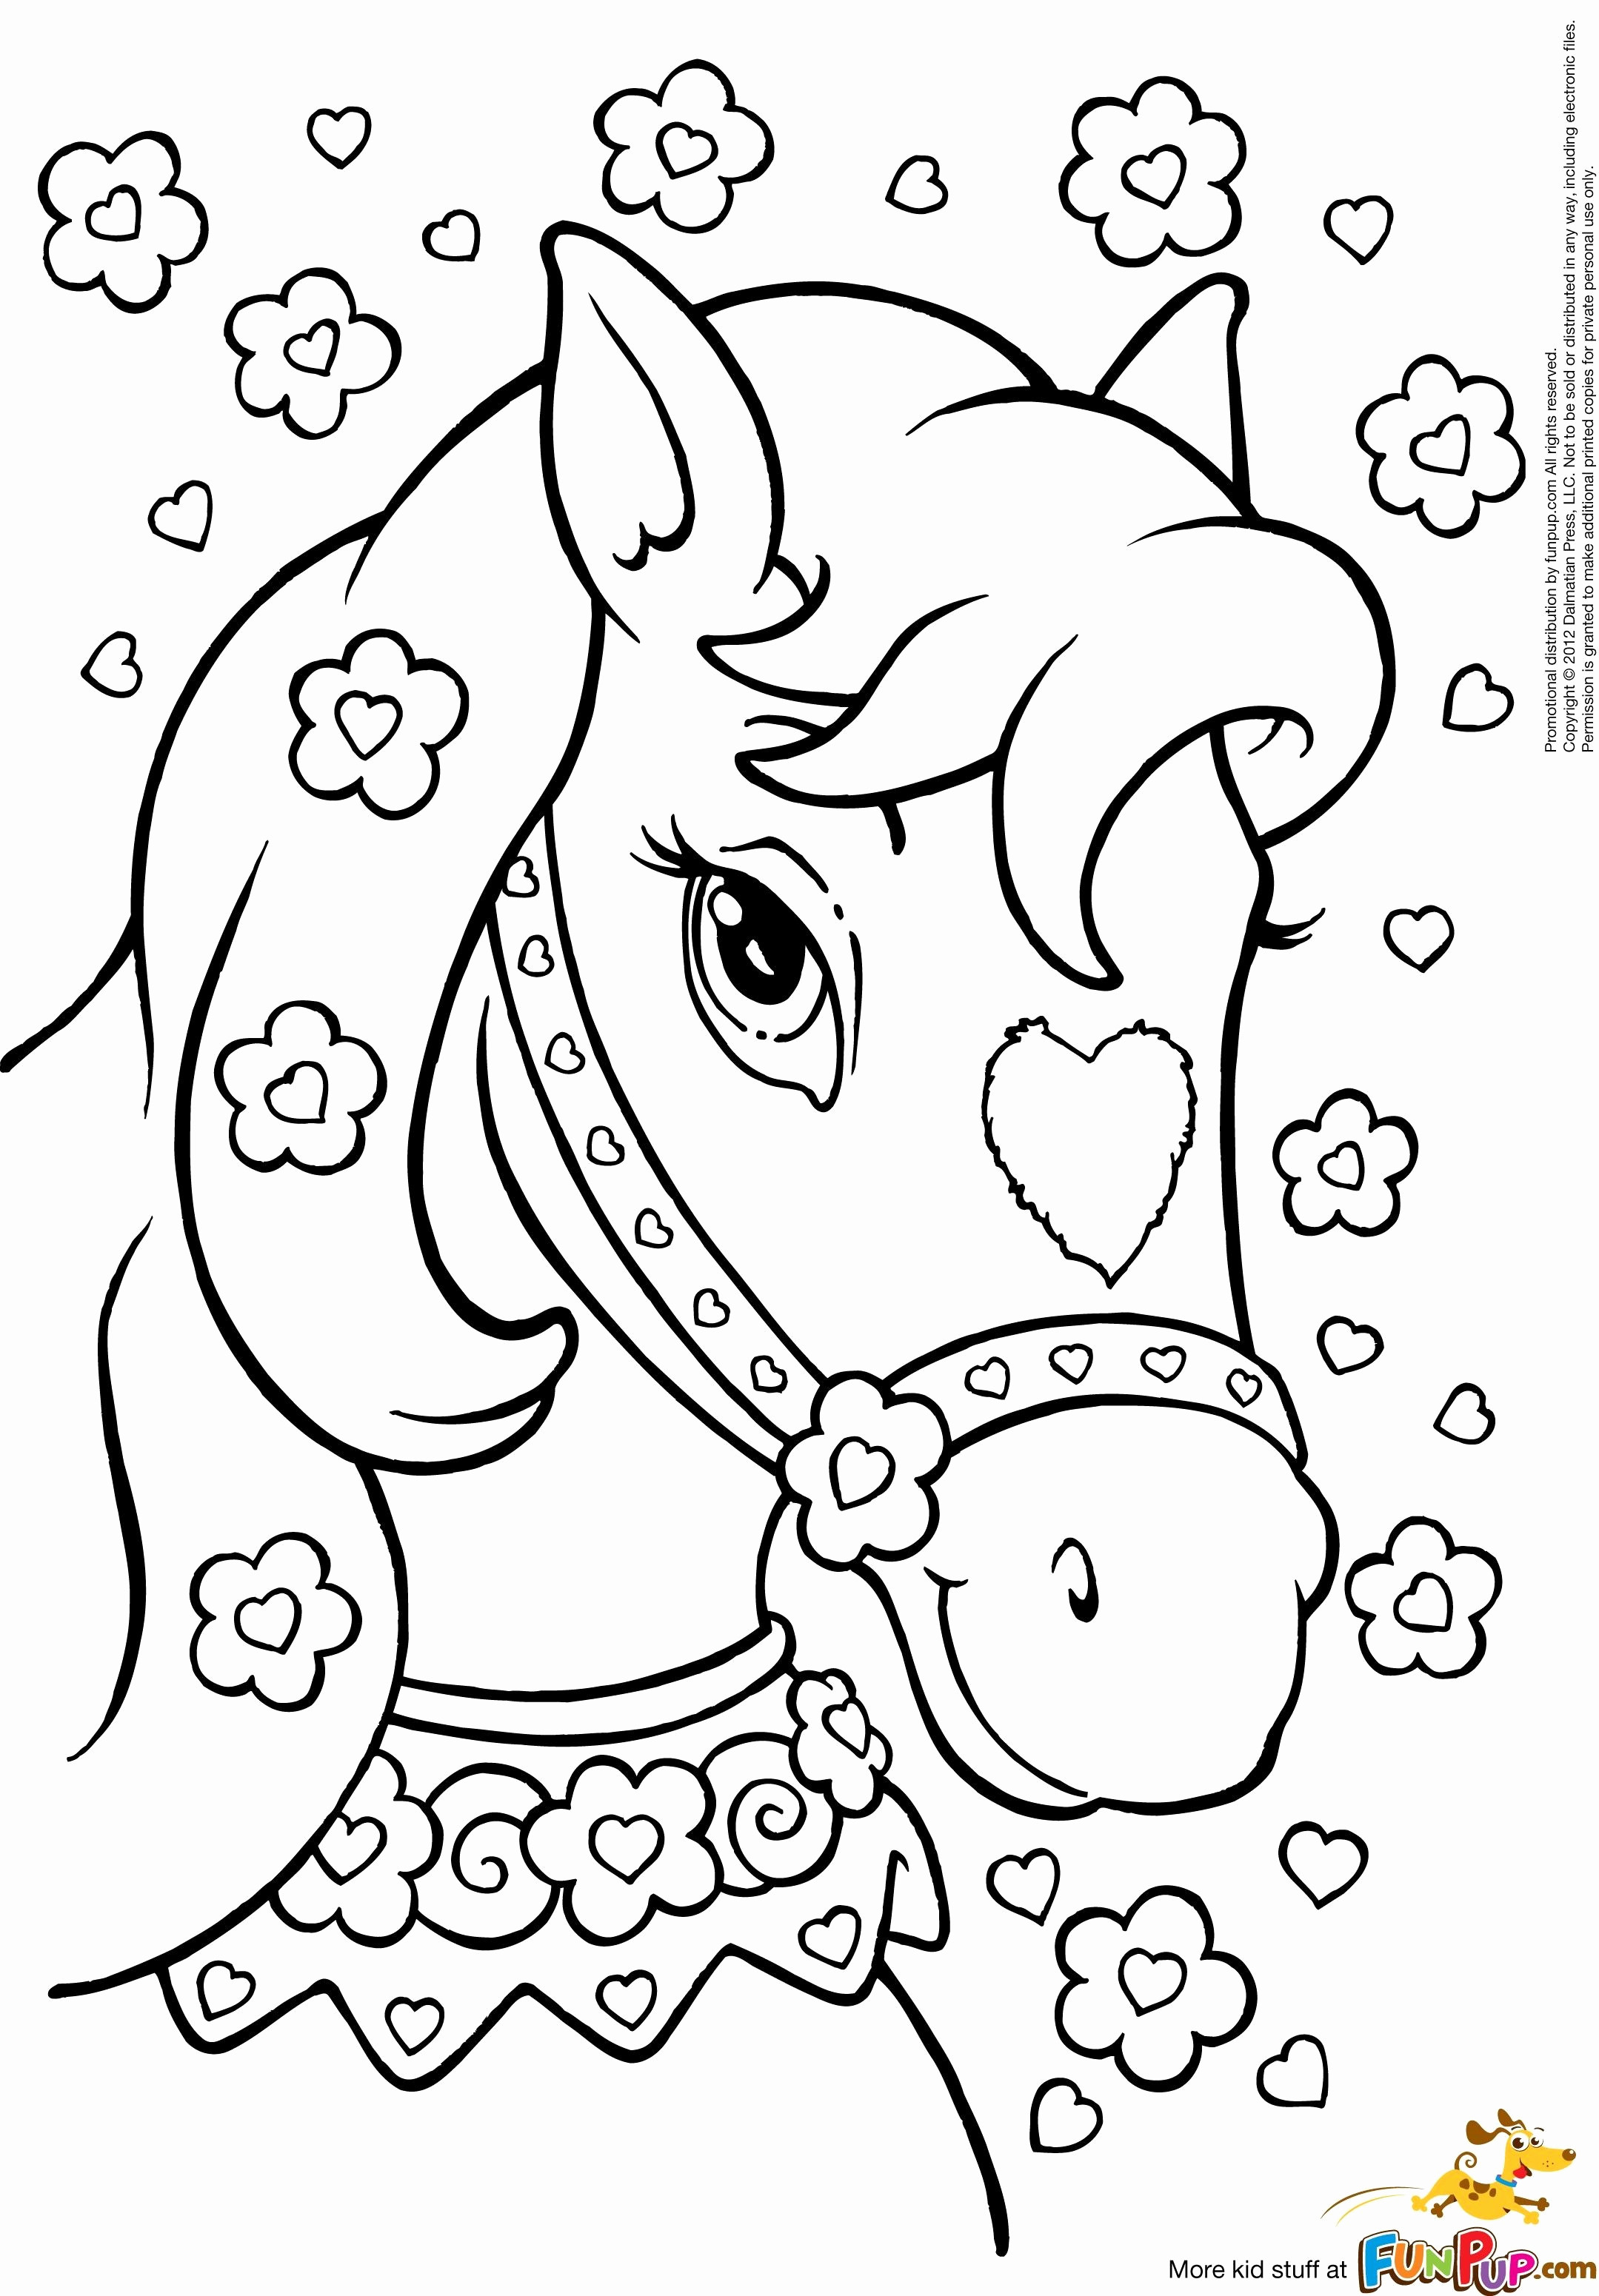 Real horse coloring pages to print coloring pages horses printable horse coloring pages printable cow